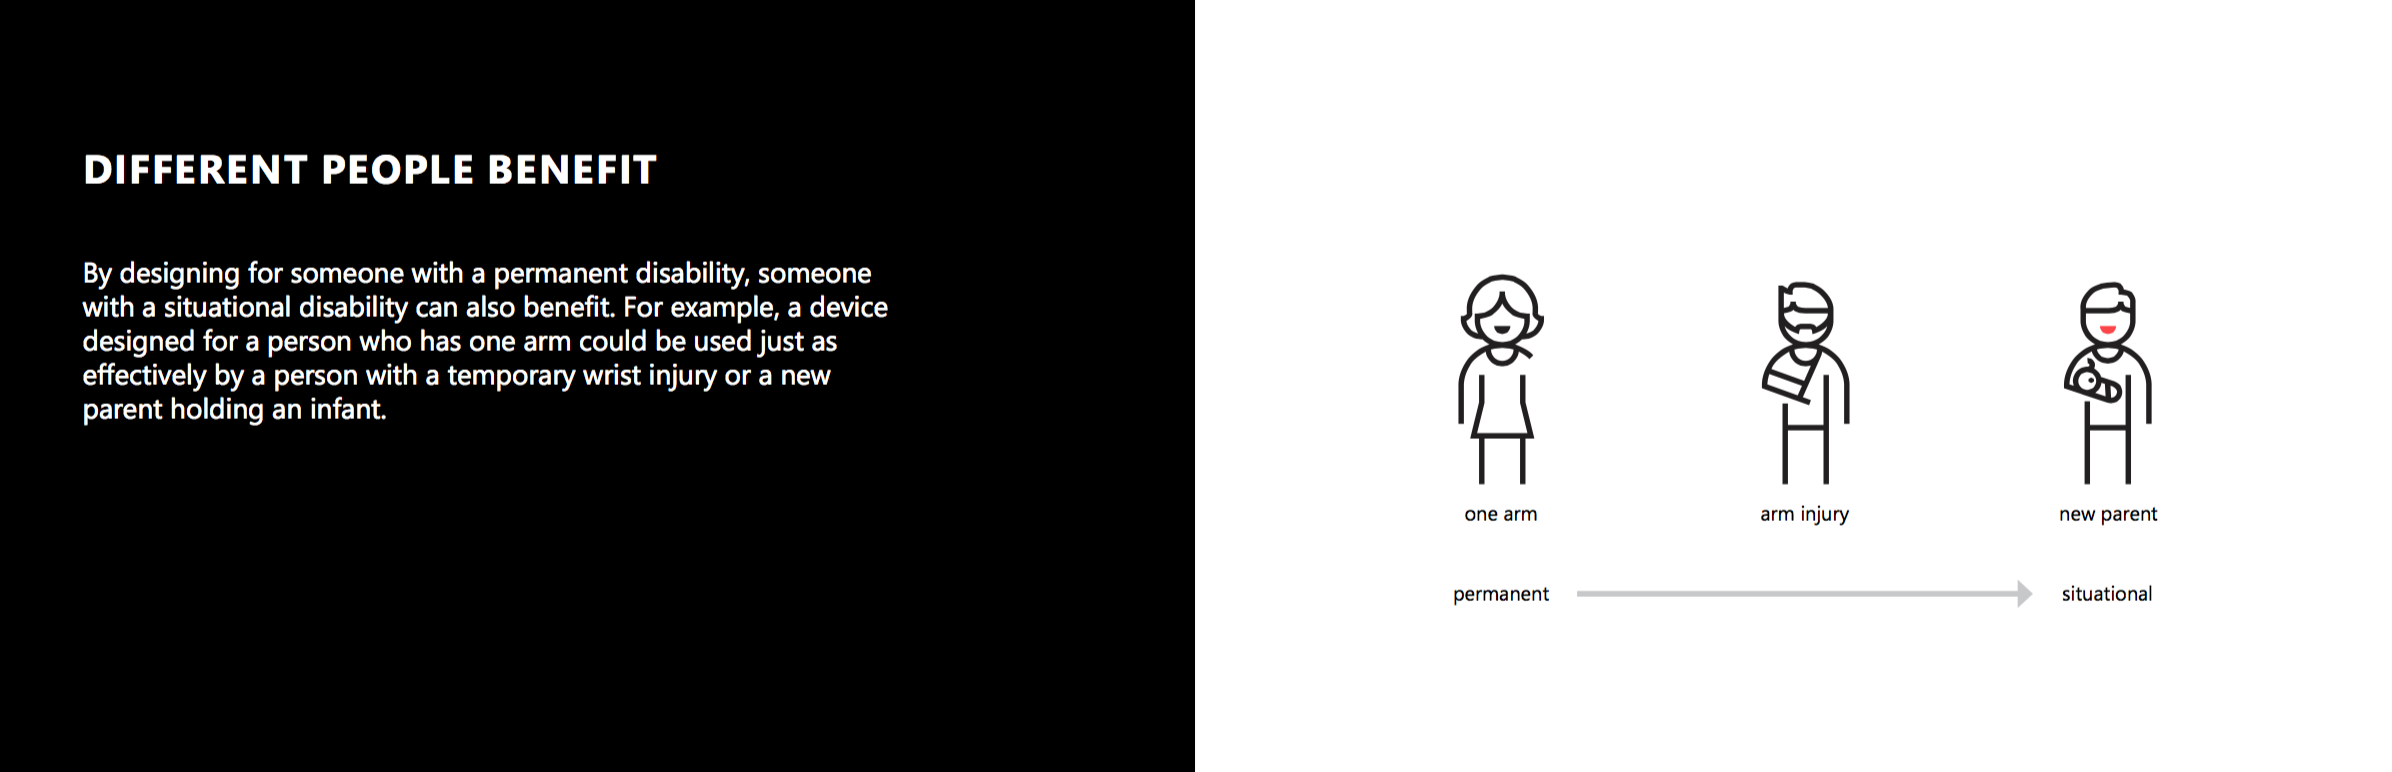 Image from the Microsoft Inclusive Toolkit.